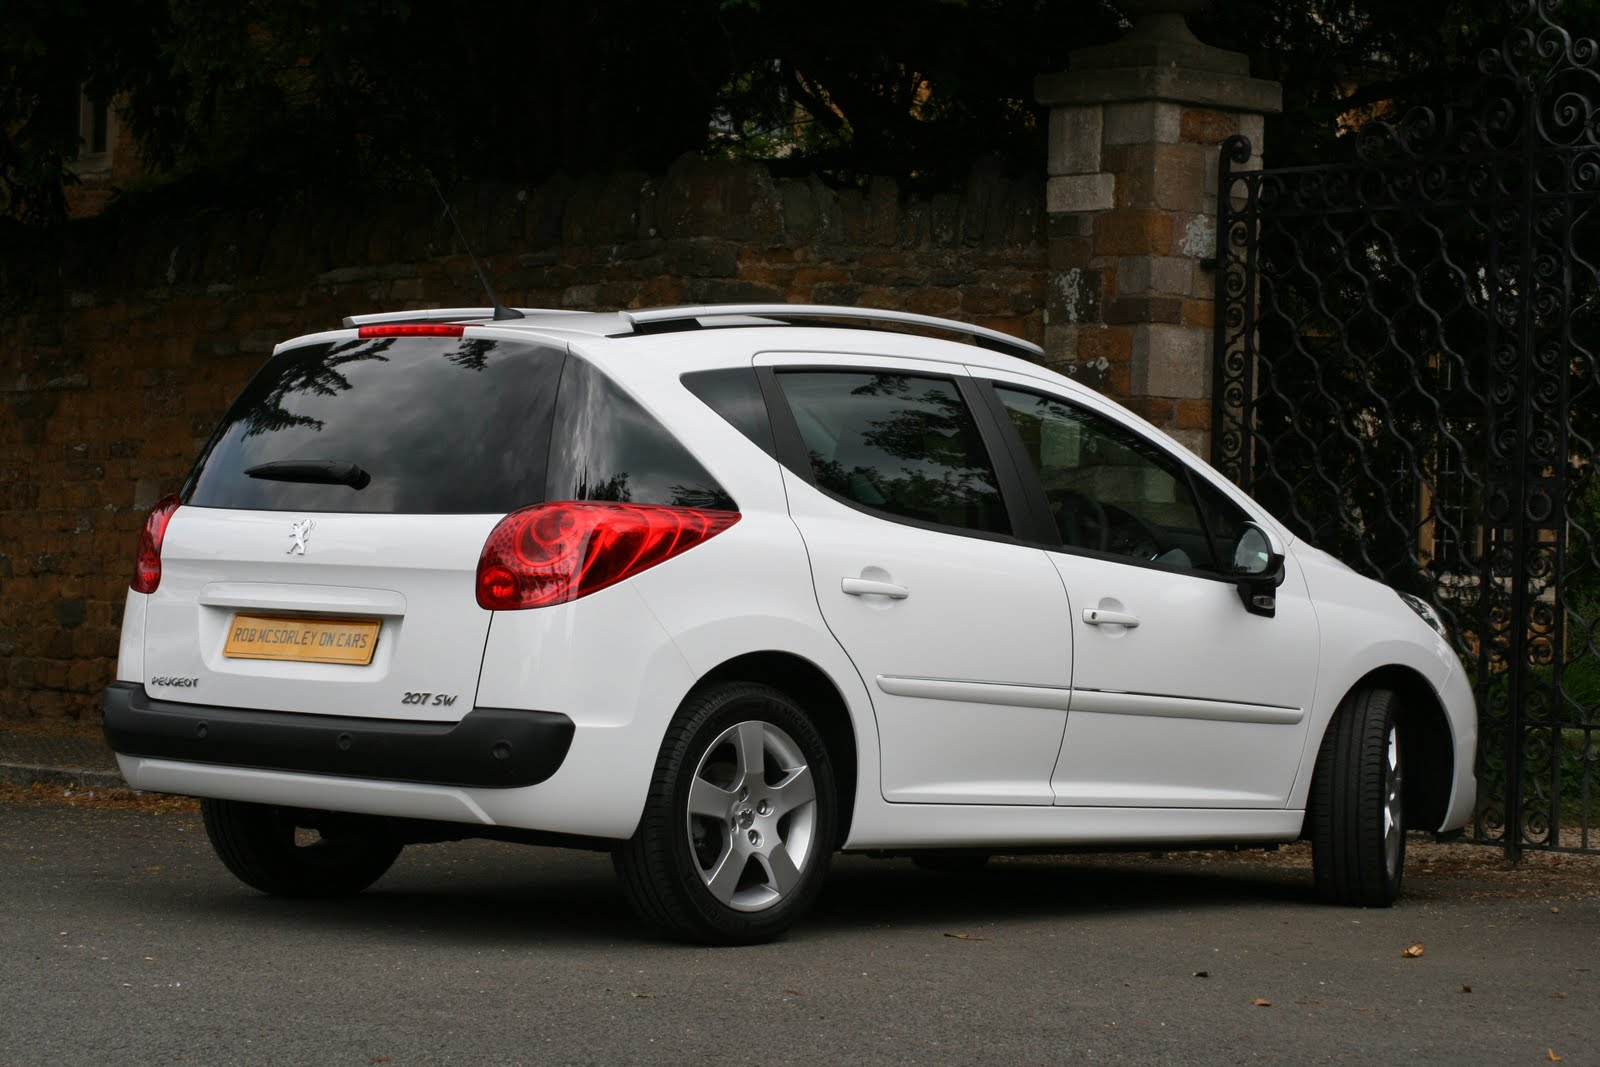 Robmcsorleyoncars 2011 Peugeot 207 Sw Full Road Test